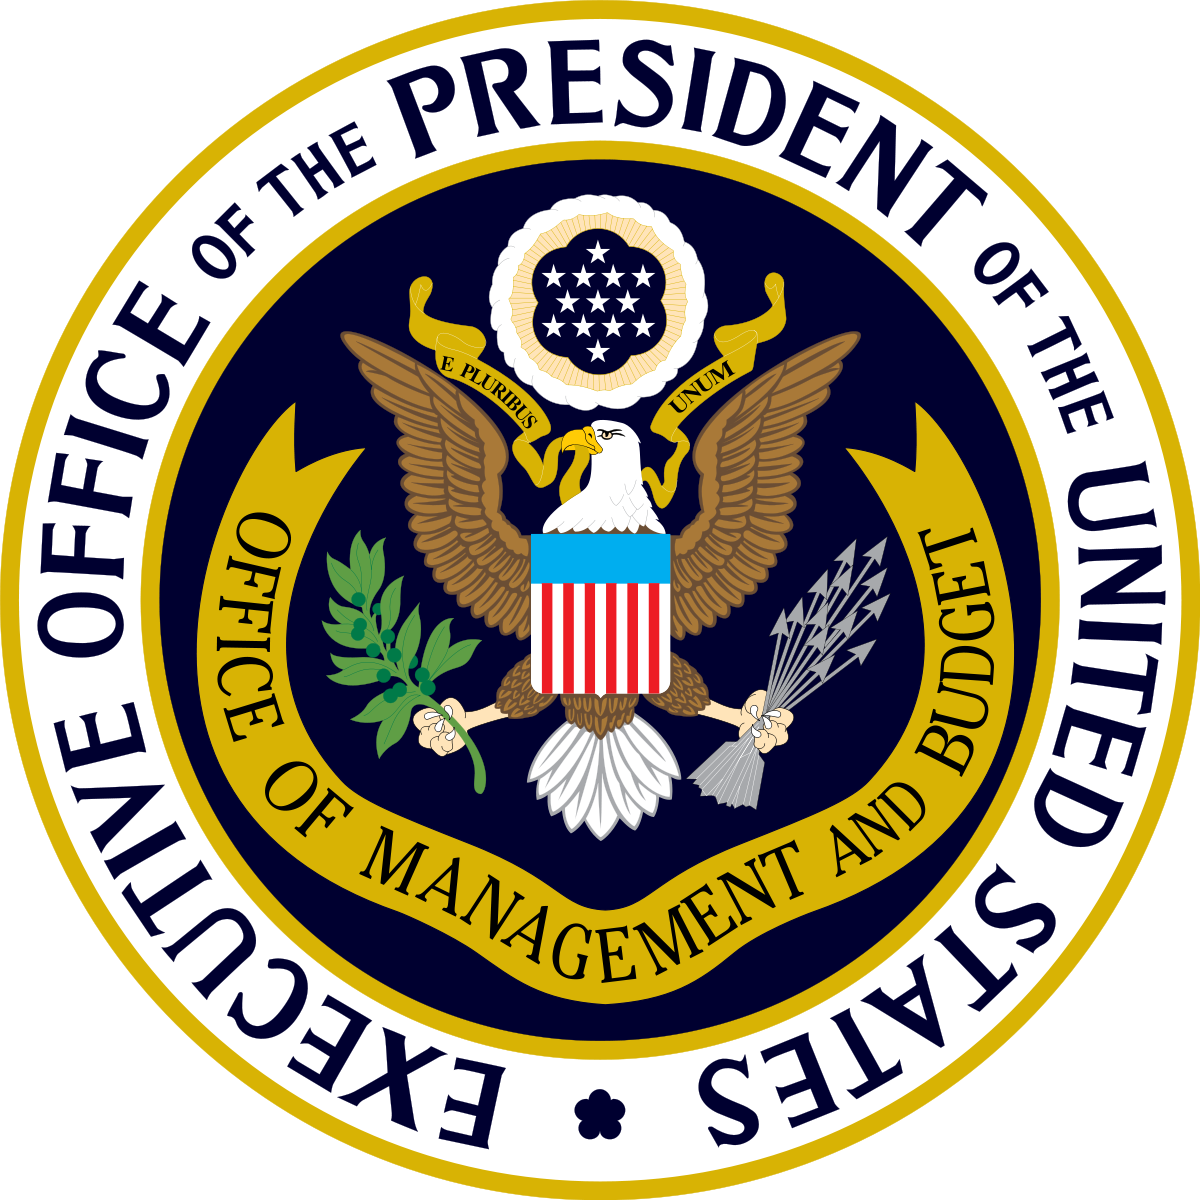 United States Office of Management and Budget